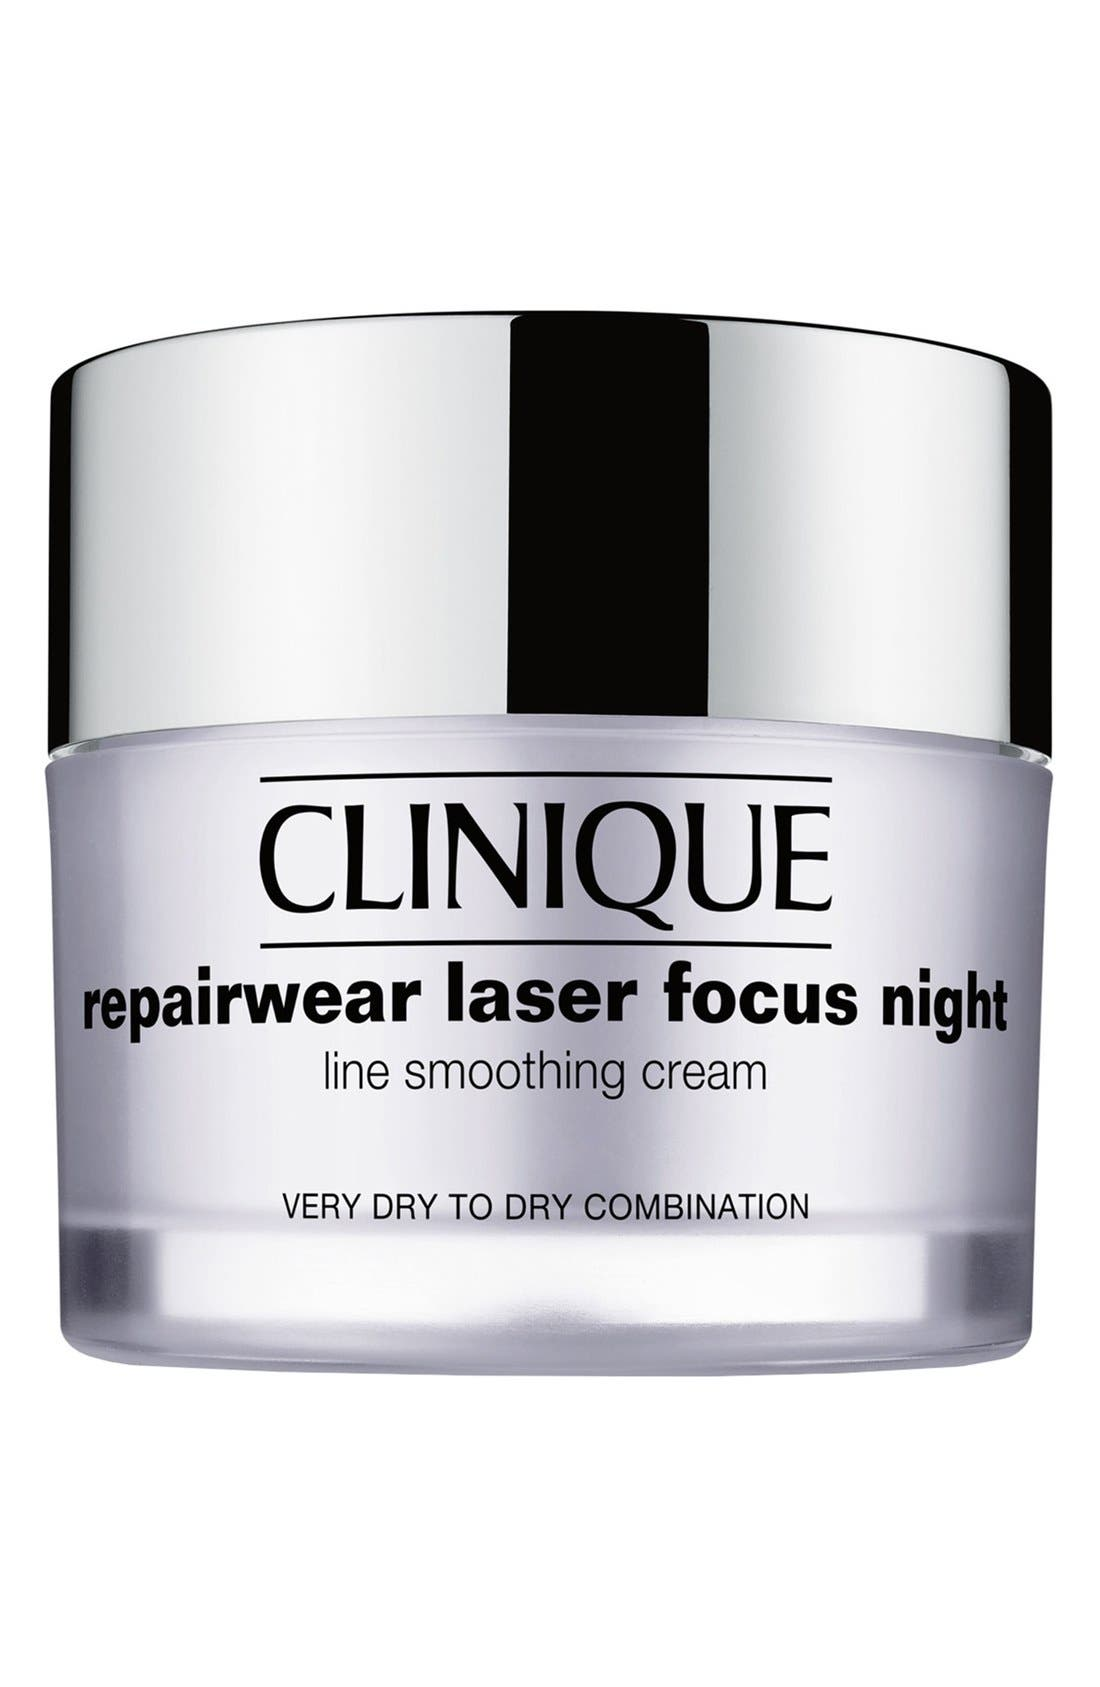 Repairwear Laser Focus Night Line Smoothing Cream,                         Main,                         color, VERY DRY TO DRY COMBINATION